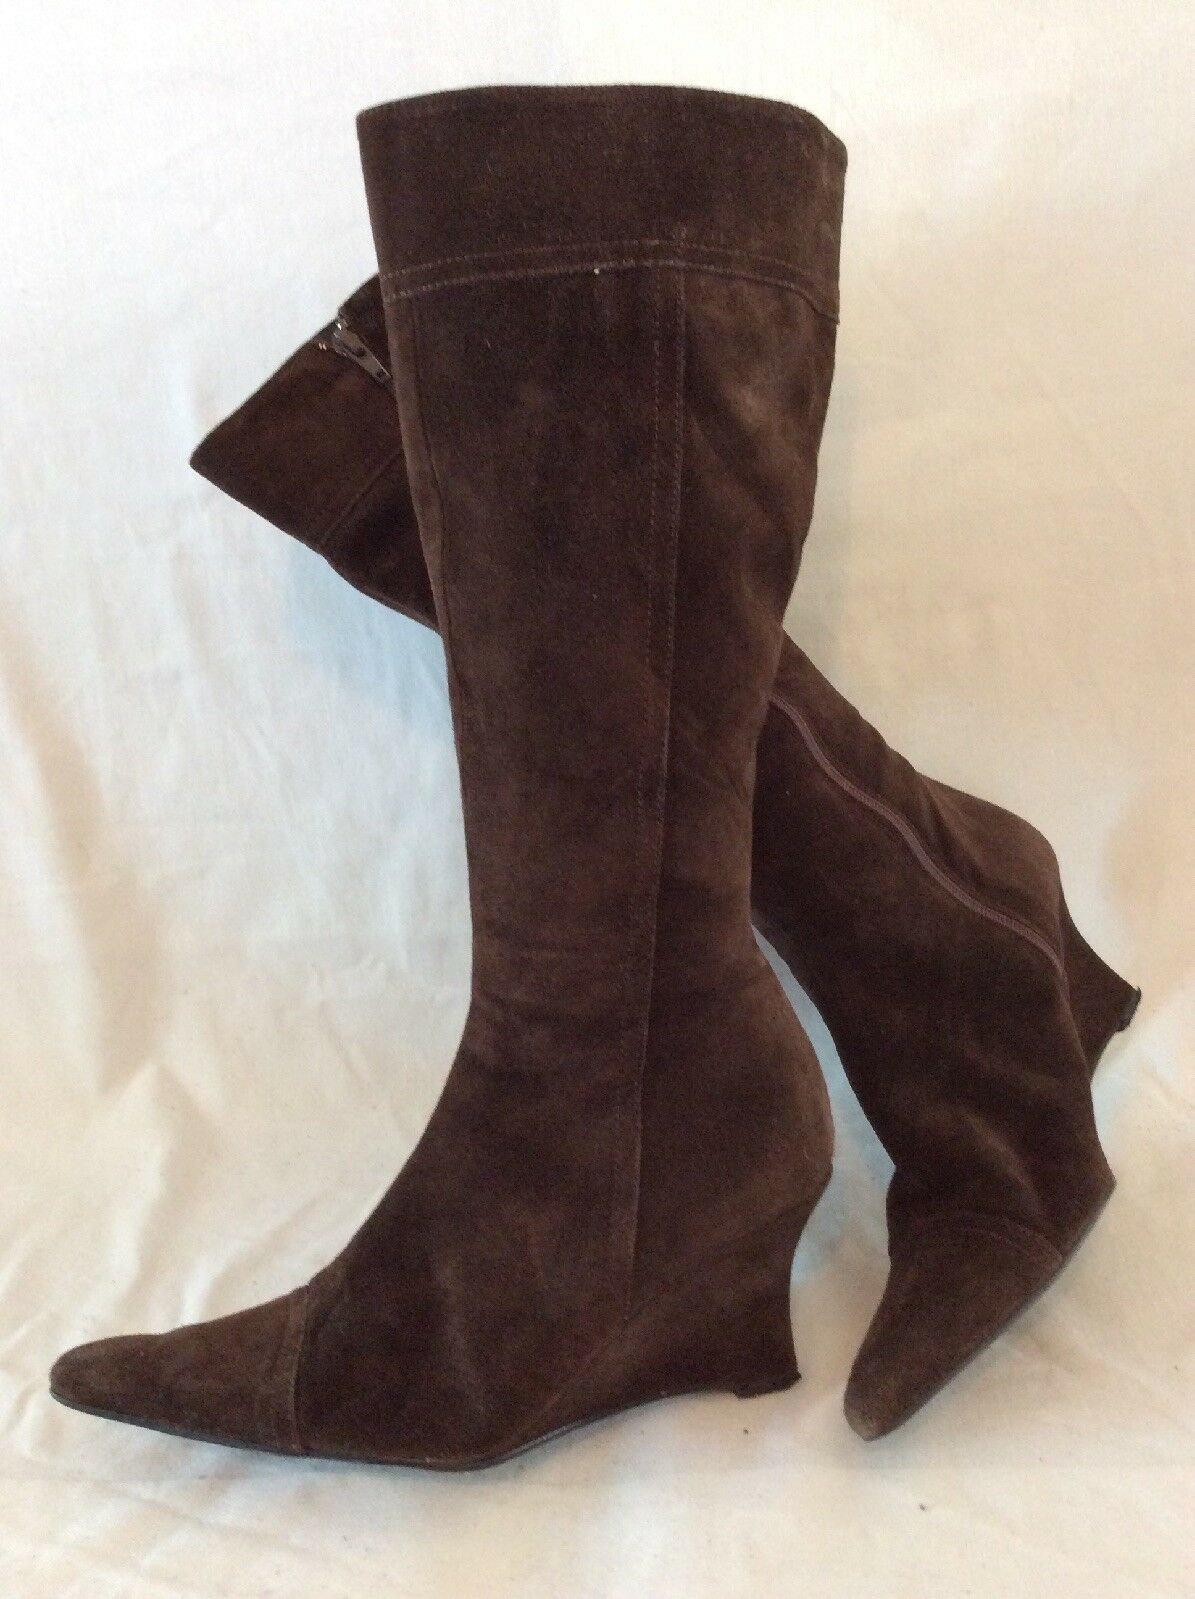 Russell&Bromley Dark Brown Knee High Suede Boots Size 40